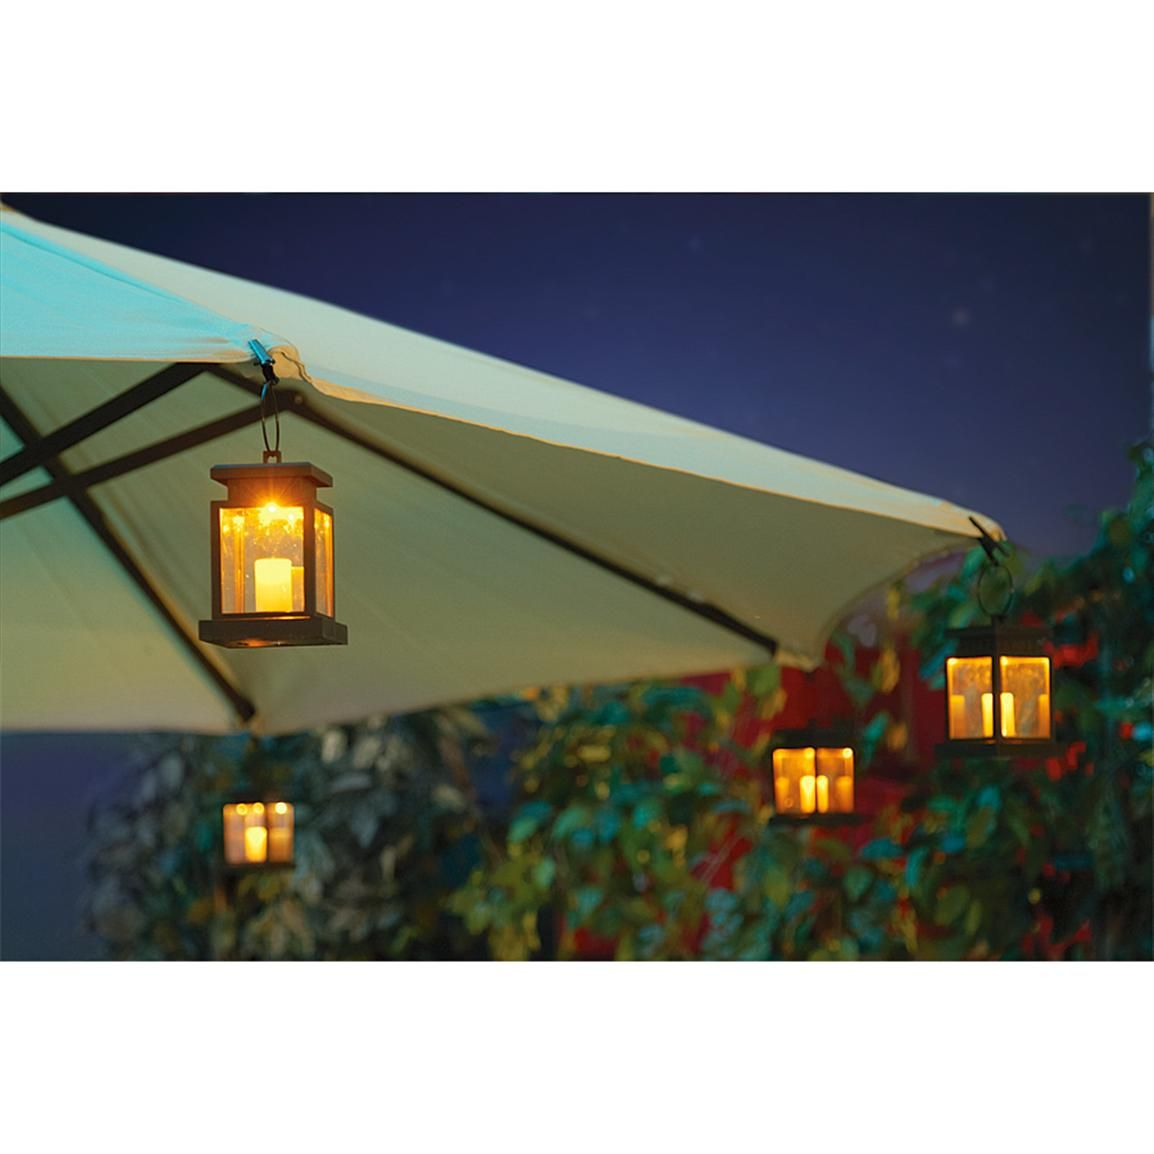 Outdoor Umbrella With Lights 4 pk of solar patio umbrella clip lights patio garden solar patio umbrella clip lights 219378 solar outdoor lighting at sportsmans guide workwithnaturefo